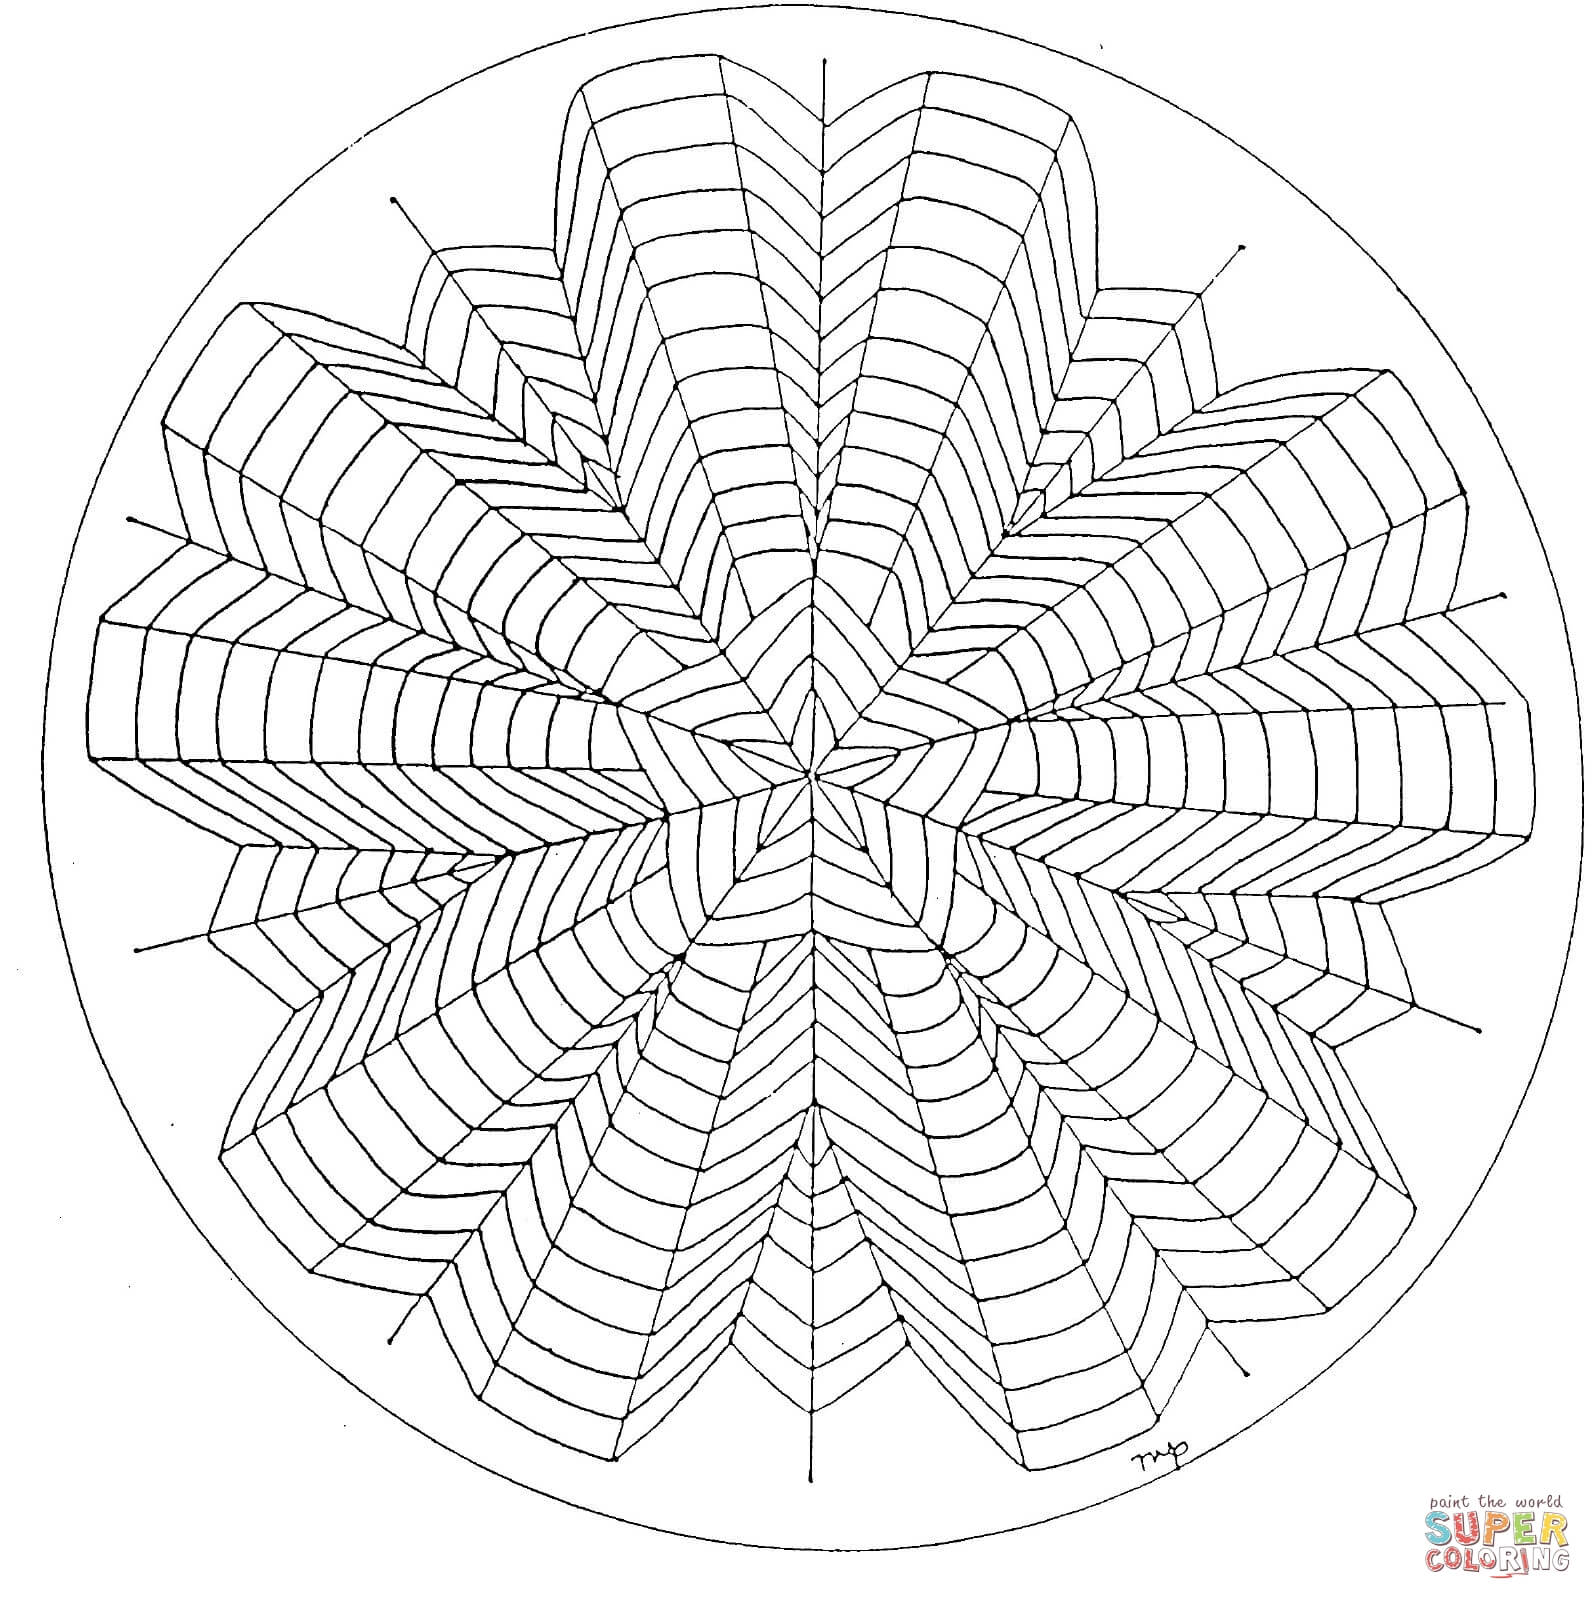 coloring page of a star stars coloring pages for kids click the